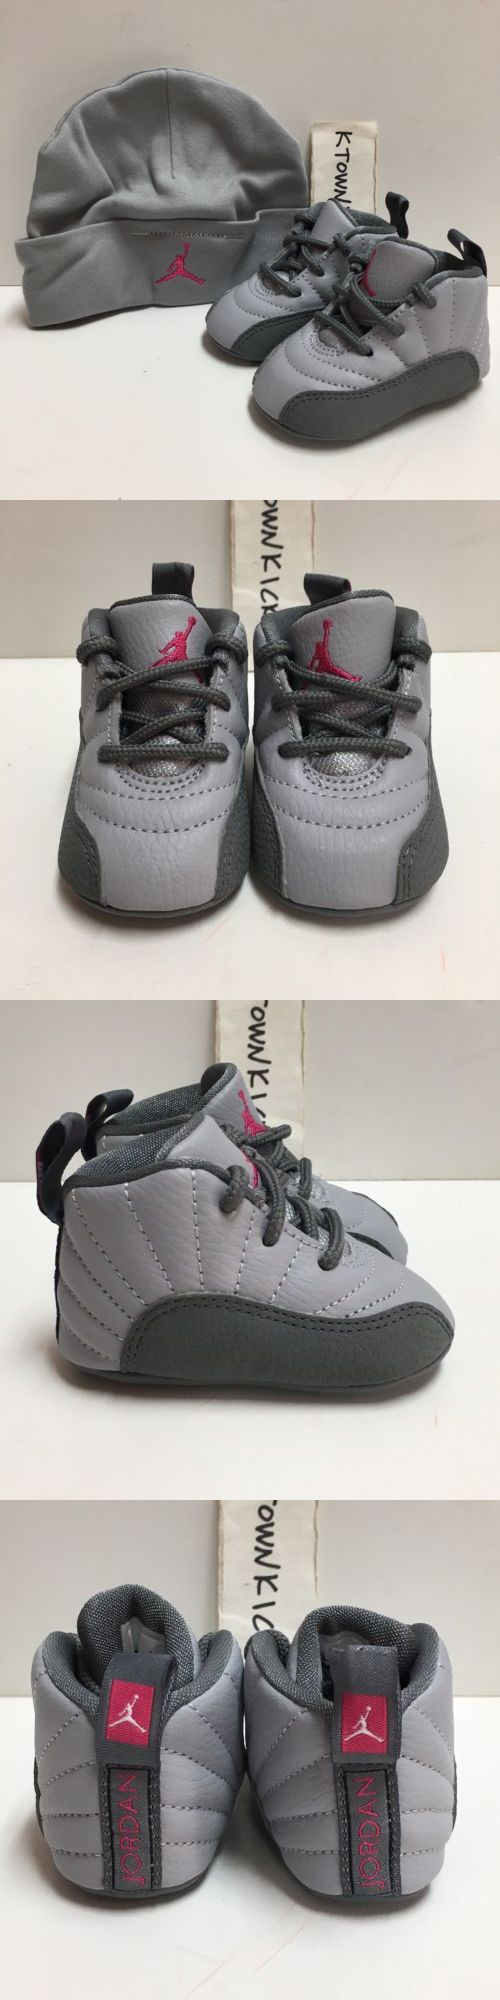 Infant Shoes: Nike Jordan 12 Retro Baby Hat Crib Shoes Gift Pack Grey Pink378139 029 Size 1C -> BUY IT NOW ONLY: $44.99 on eBay!